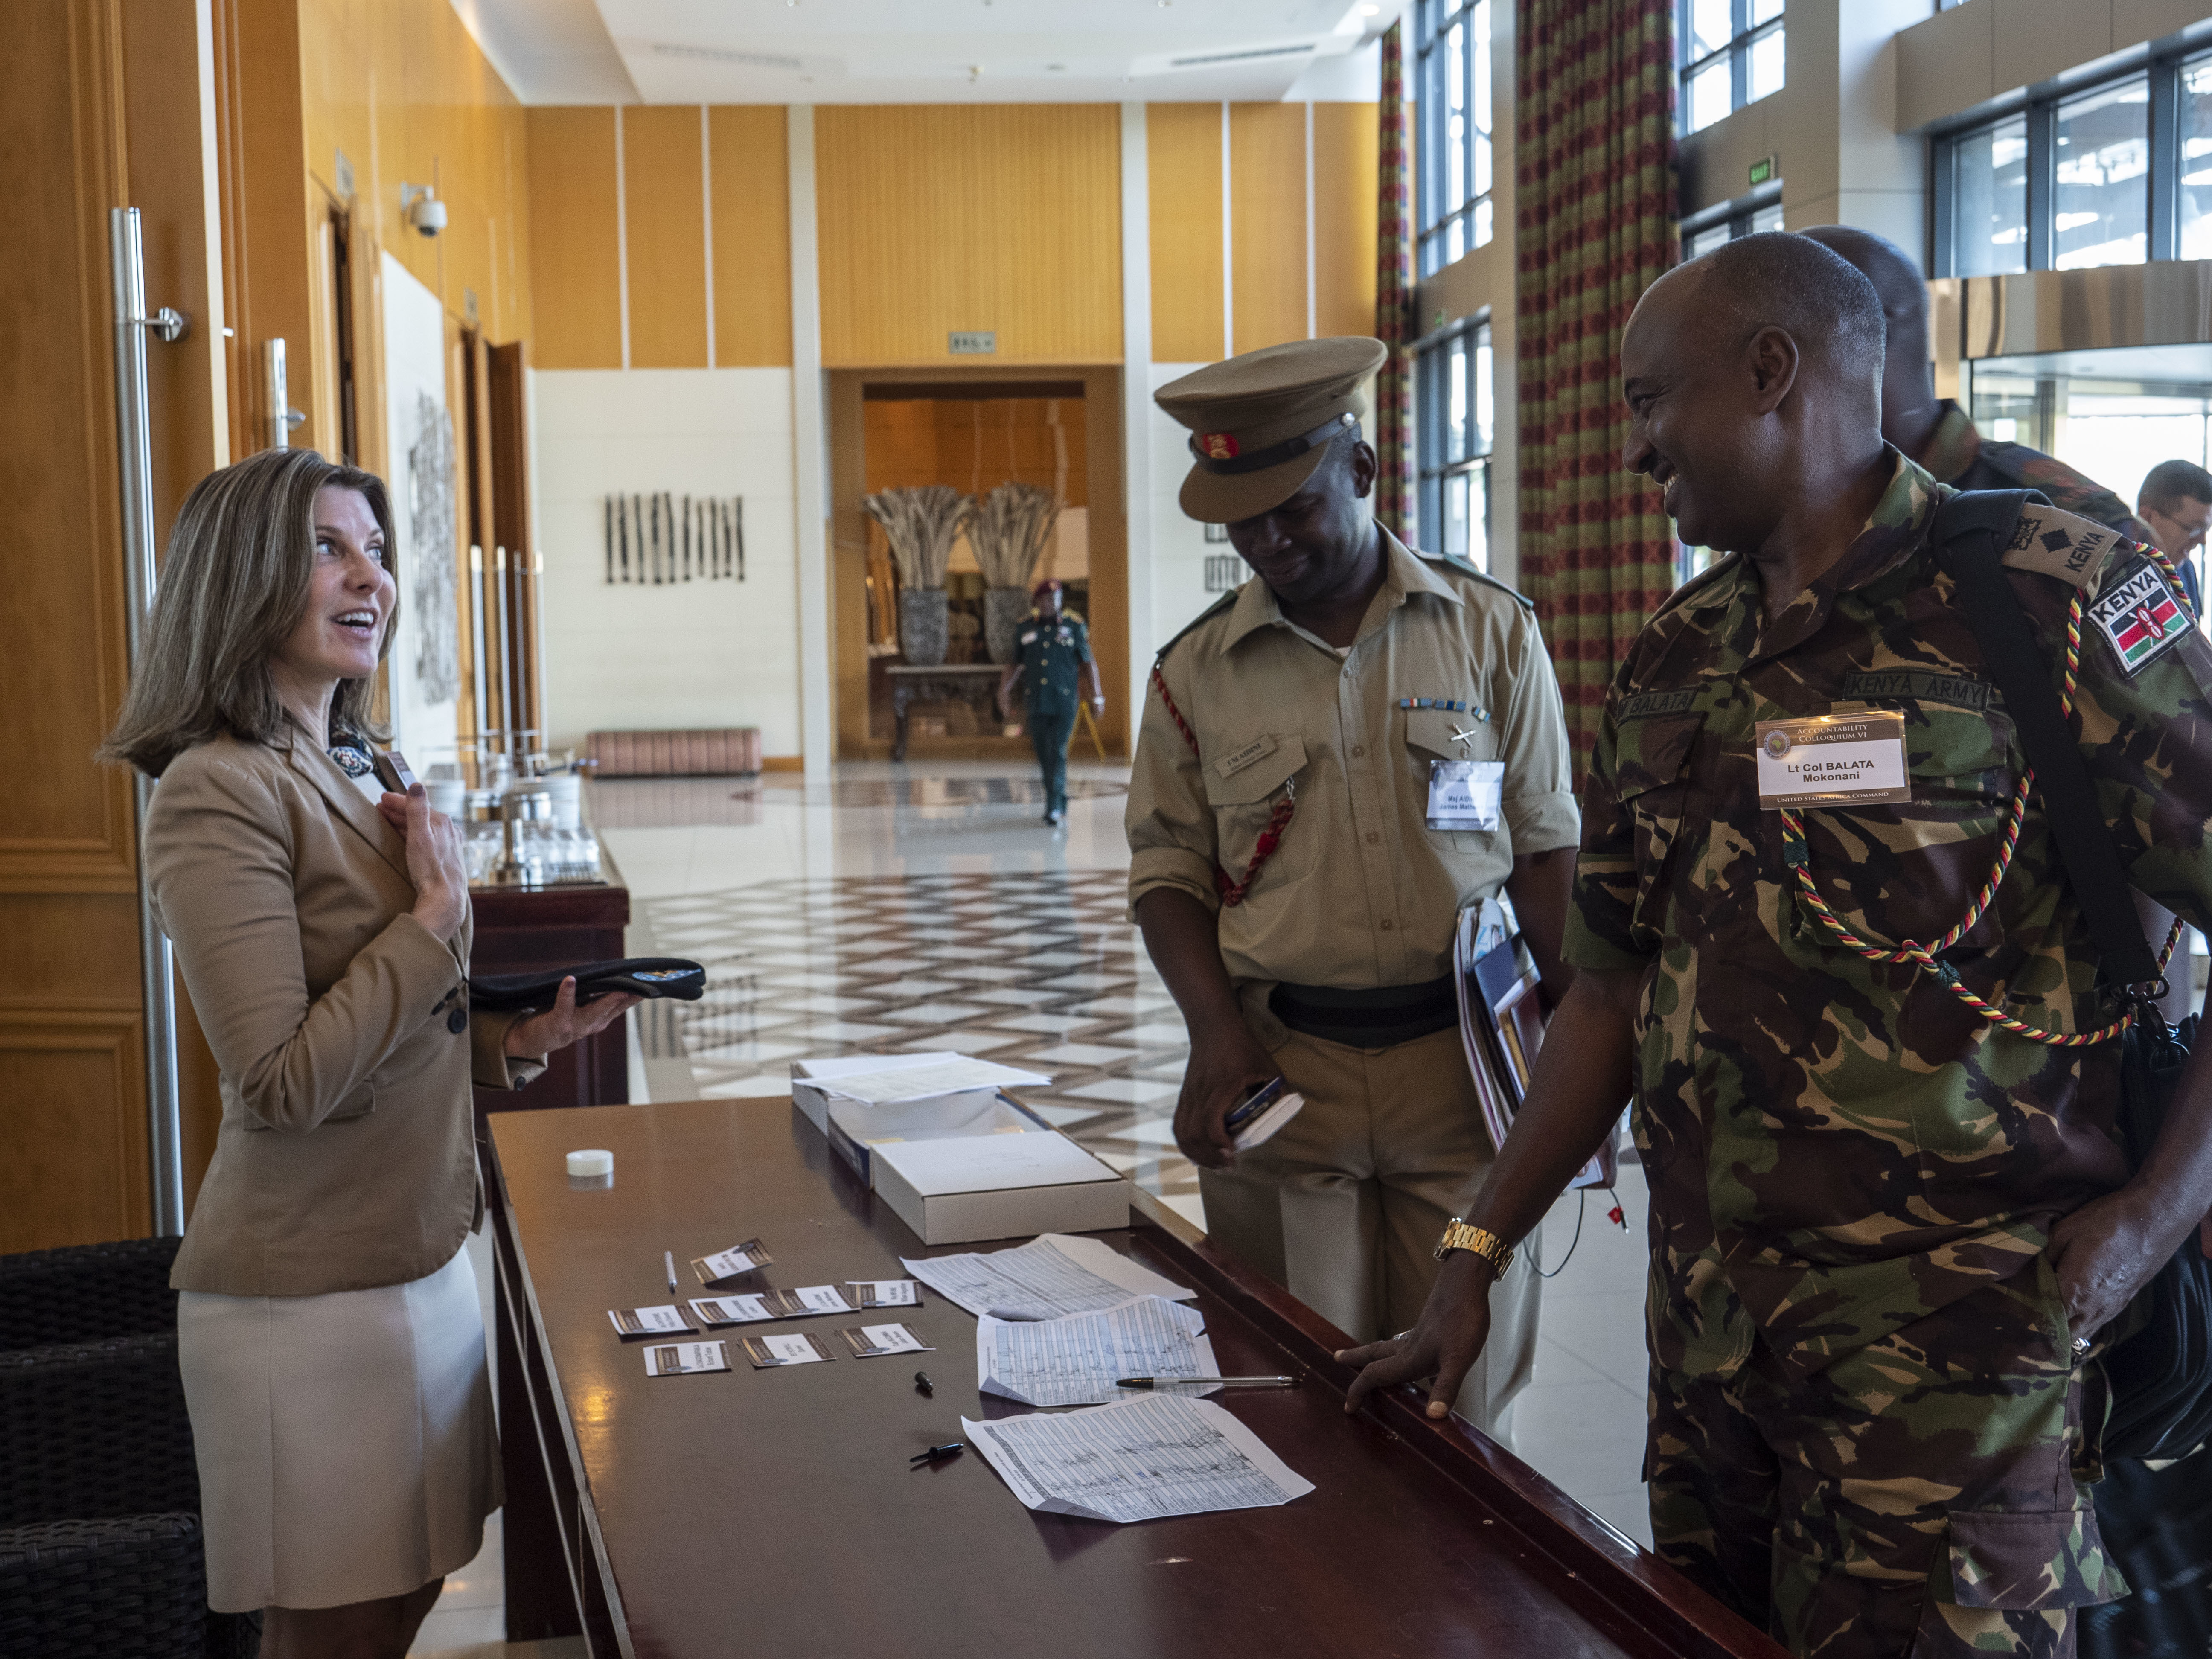 Sandi Franzblau, Attorney Advisor with the United States Africa Command (USAFRICOM) Office of Legal Counsel, greets delegates on the second morning of the Accountability Colloquium VI, held in Lilongwe, Malawi, February 27, 2019. The Accountability Colloquium is an annual event hosted by USAFRICOM that seeks to create a collaborative forum for African legal professionals and military commanders to exchange information on topics related to African military operations. (DoD Photo by U.S. Army Sergeant Edward A. Salcedo)